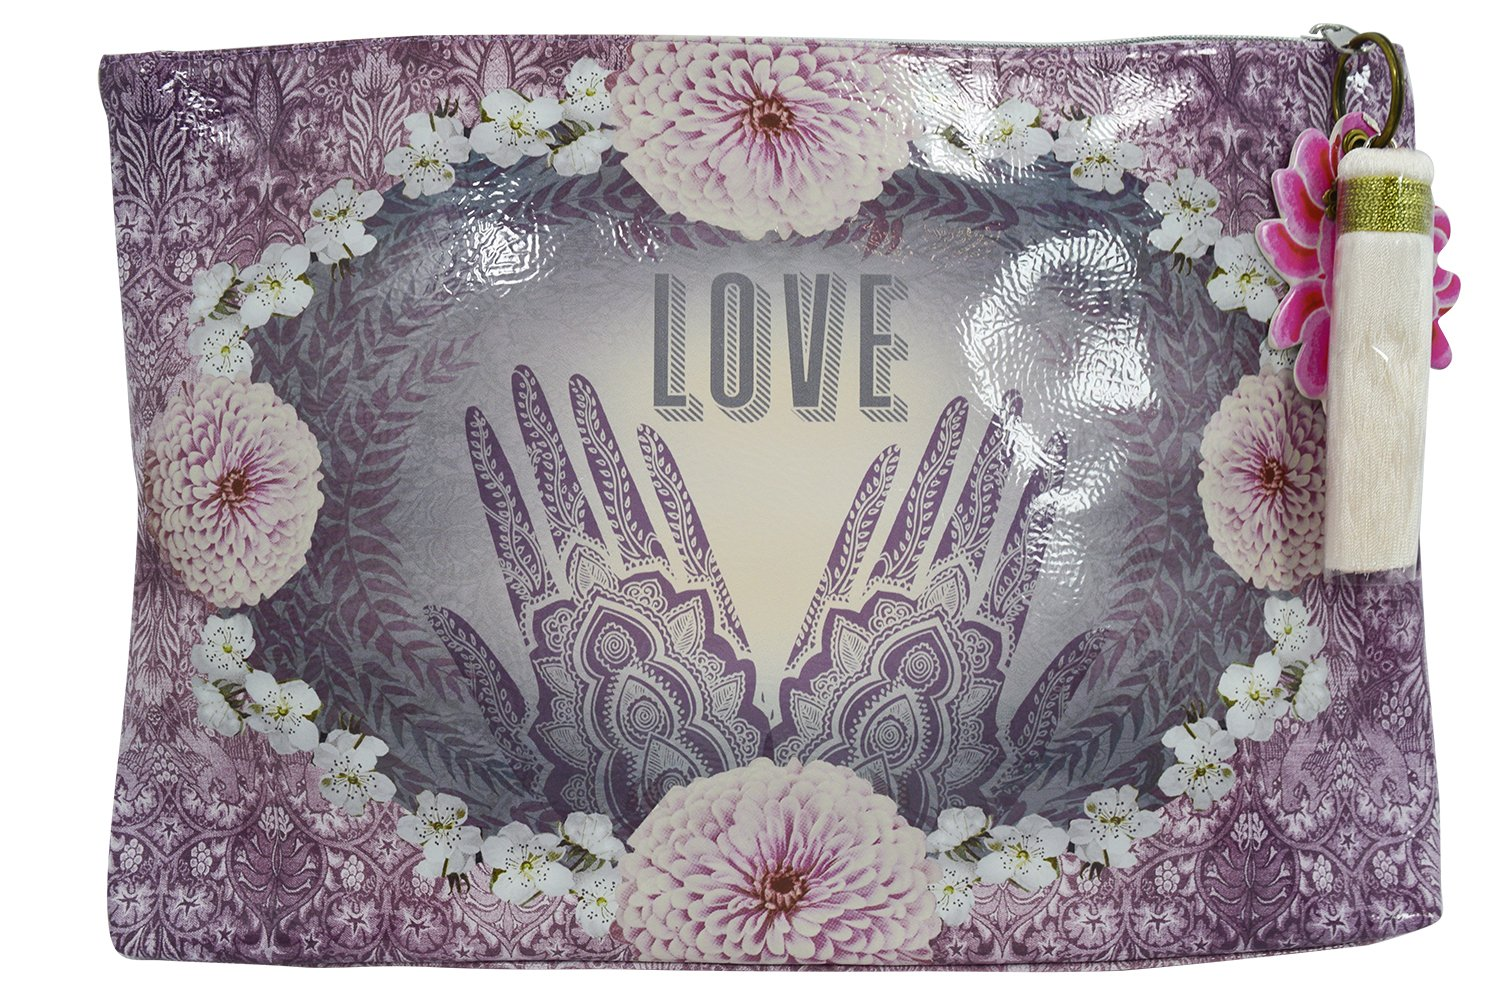 Love Henna Designs Oil Cloth Large Make-up or Accessory Travel Bag by Papaya (Image #1)